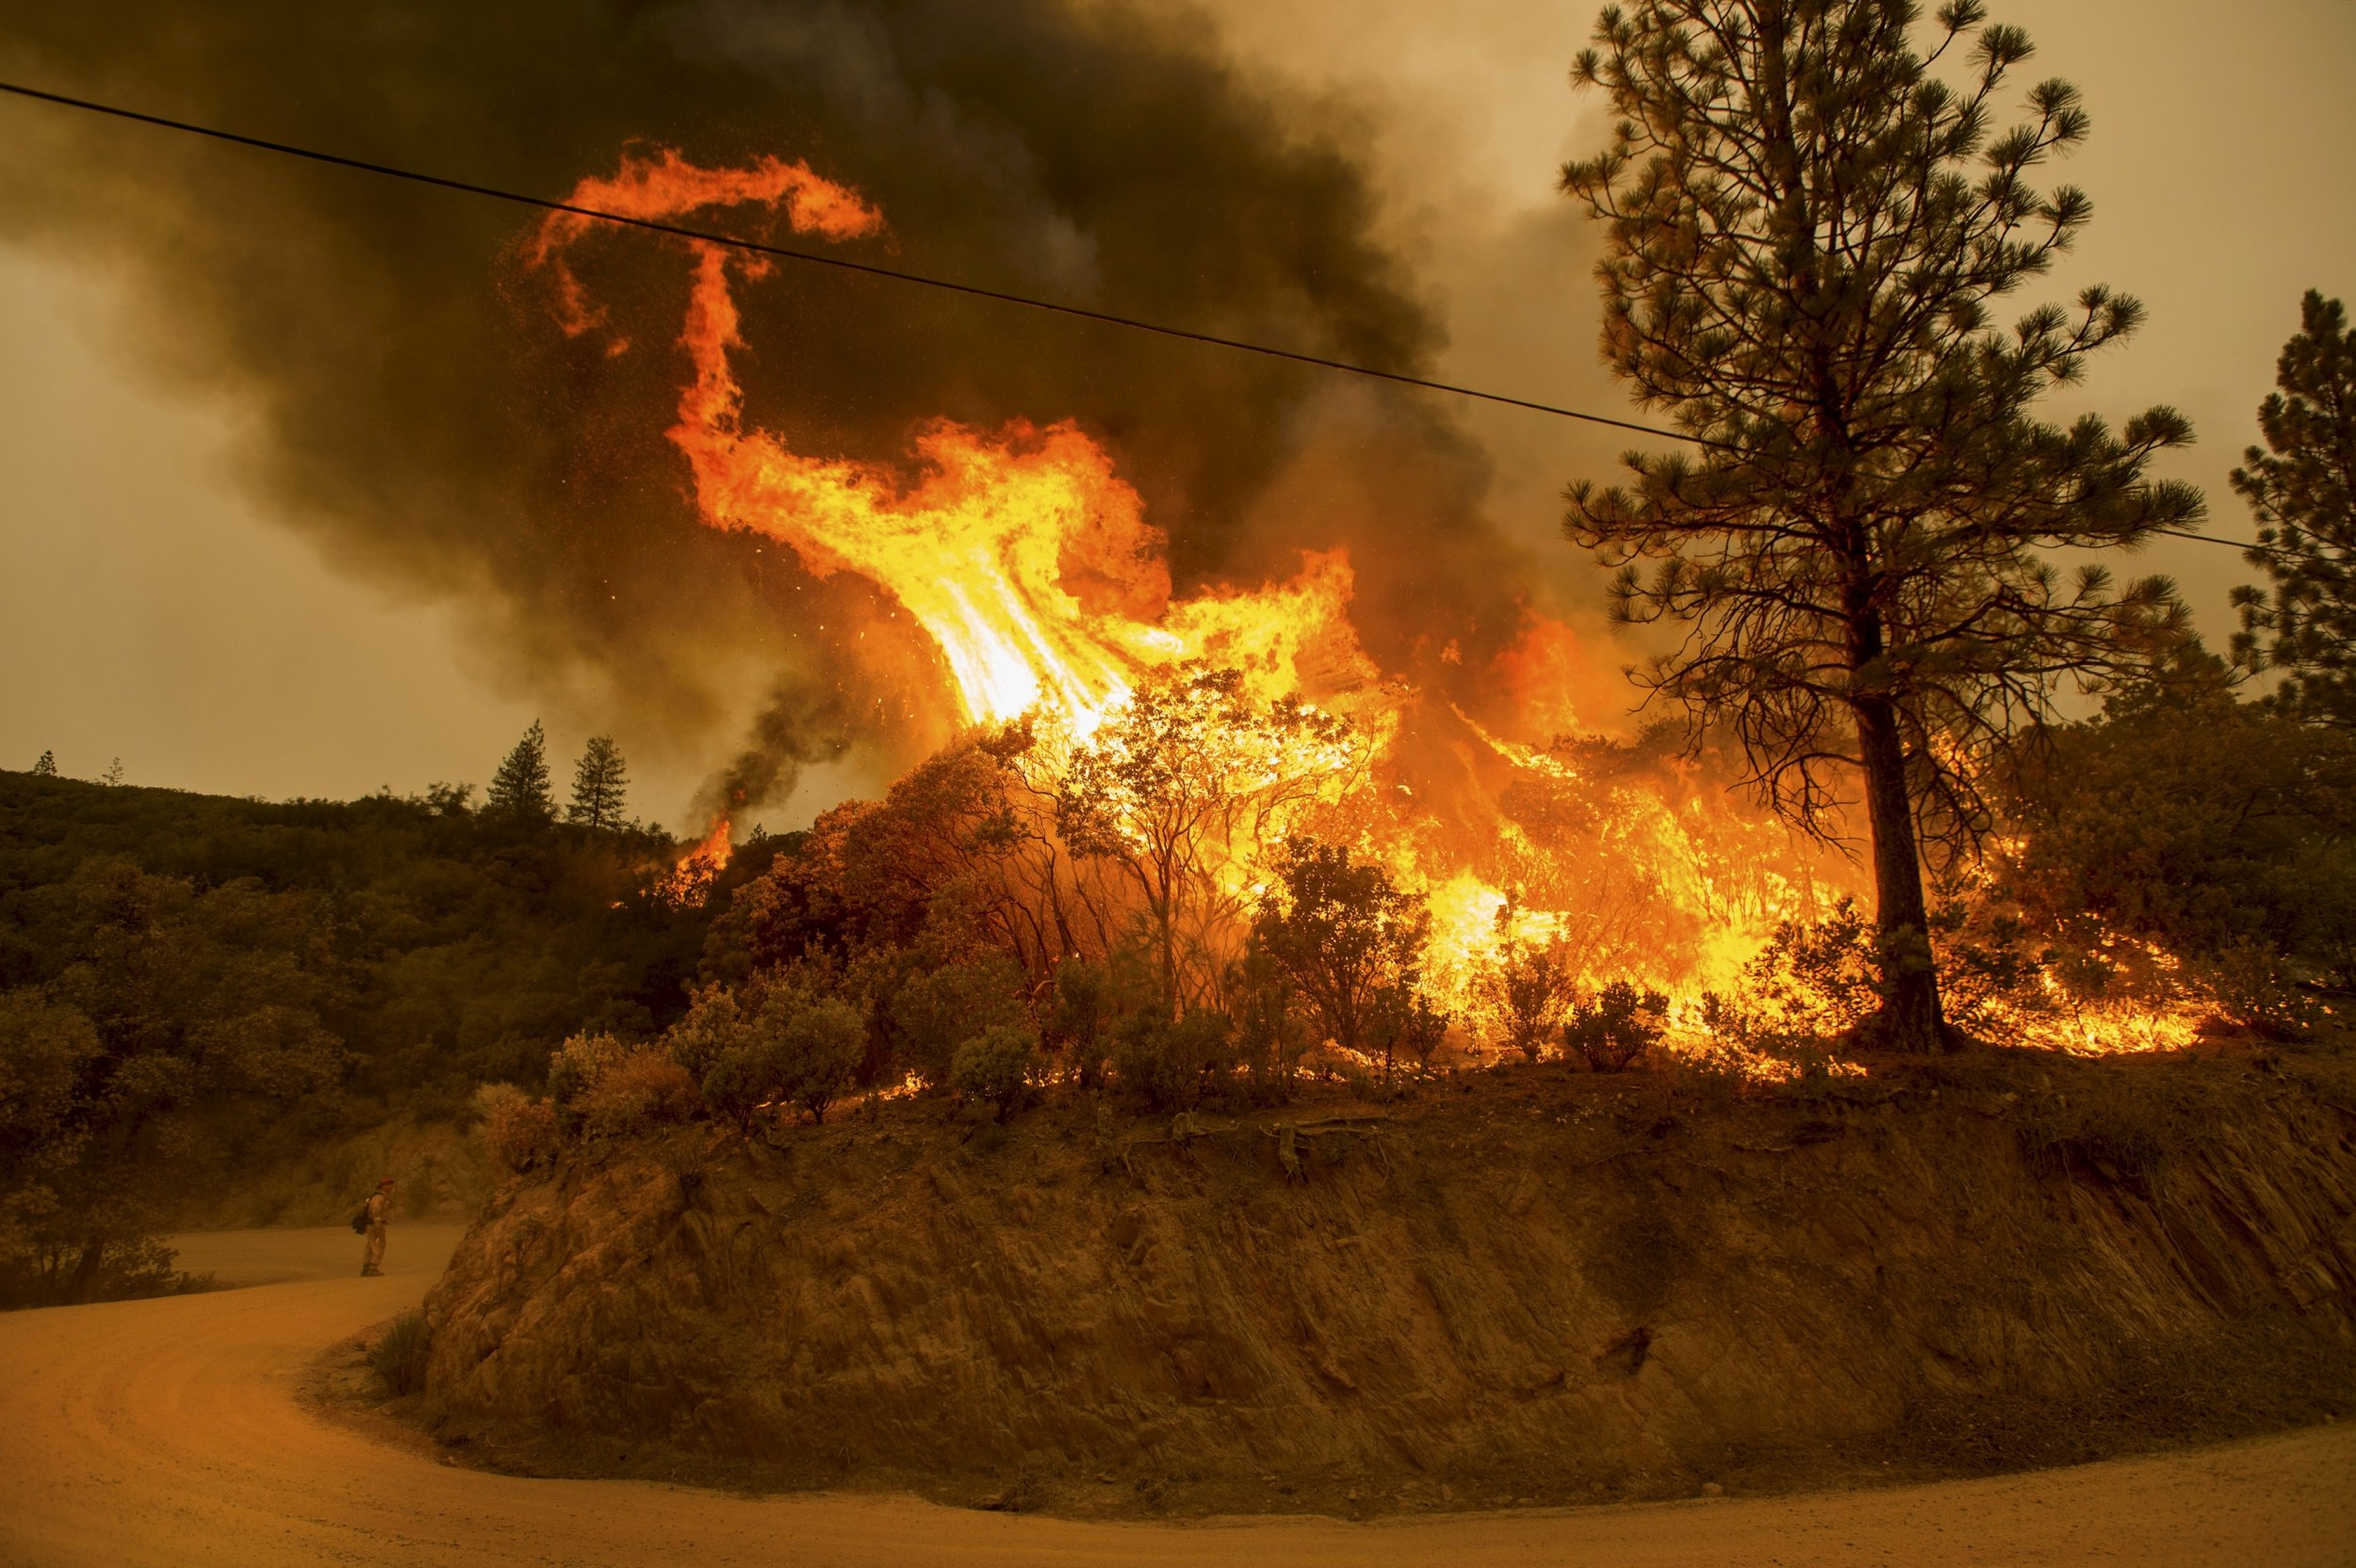 Photos Show Devastation Wrought By California Wildfires